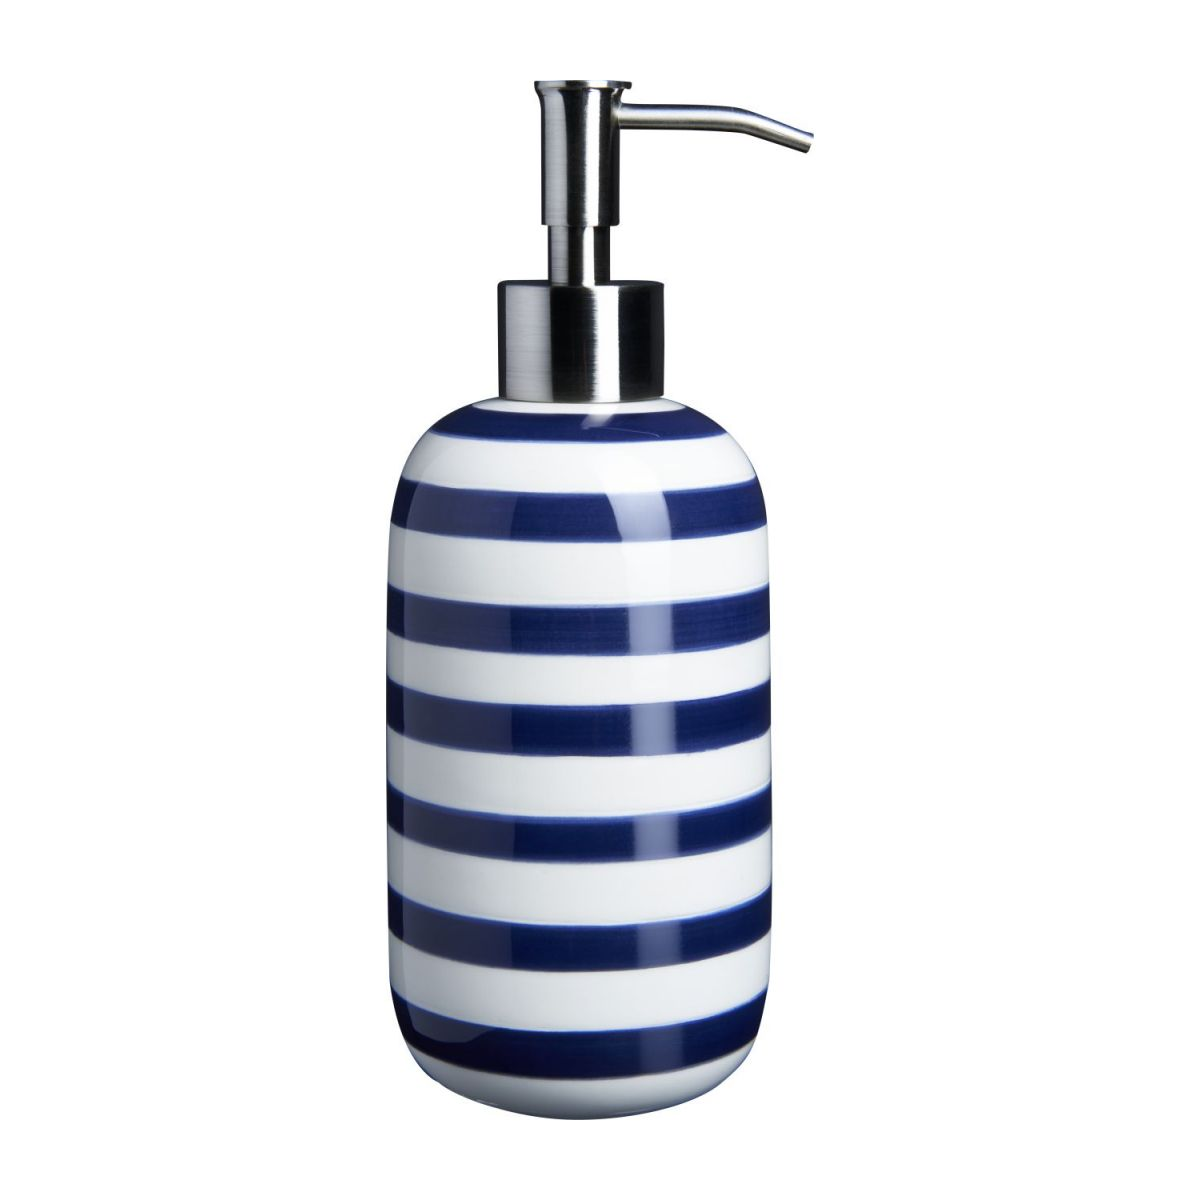 Soap dispenser n°3